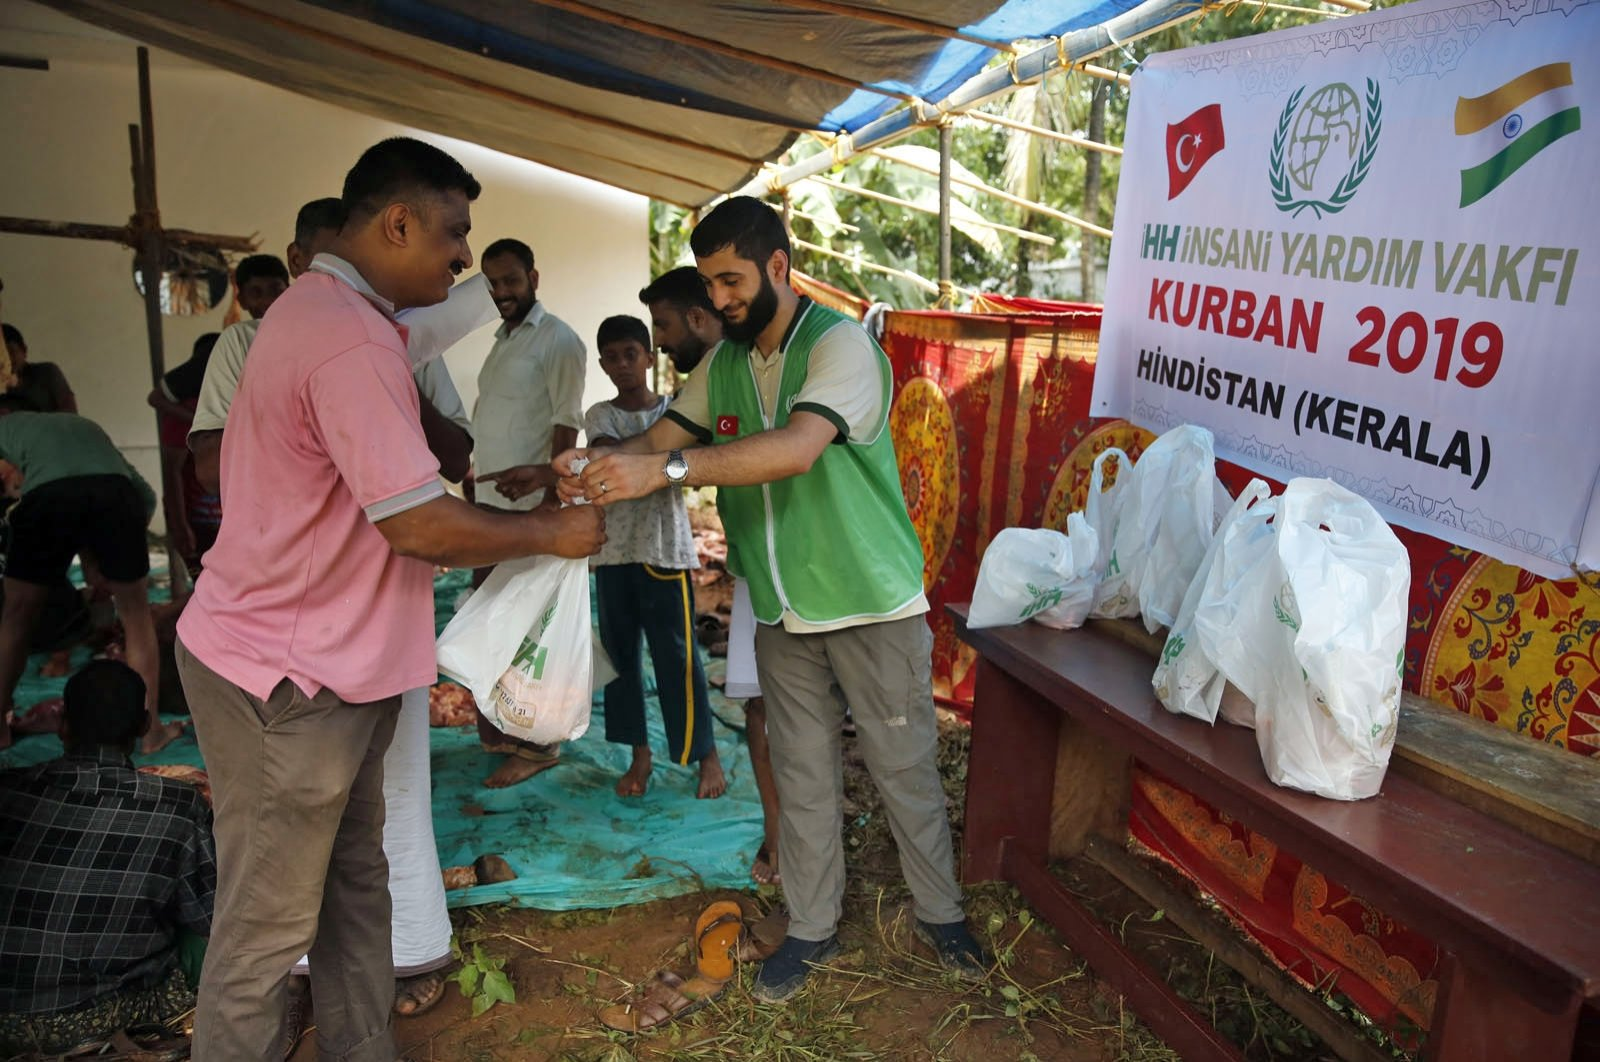 Staff members of the Turkish charity IHH deliver aid on the occasion of Qurban Bayram, in Kerala, India, Aug. 12, 2019. (Courtesy of IHH)